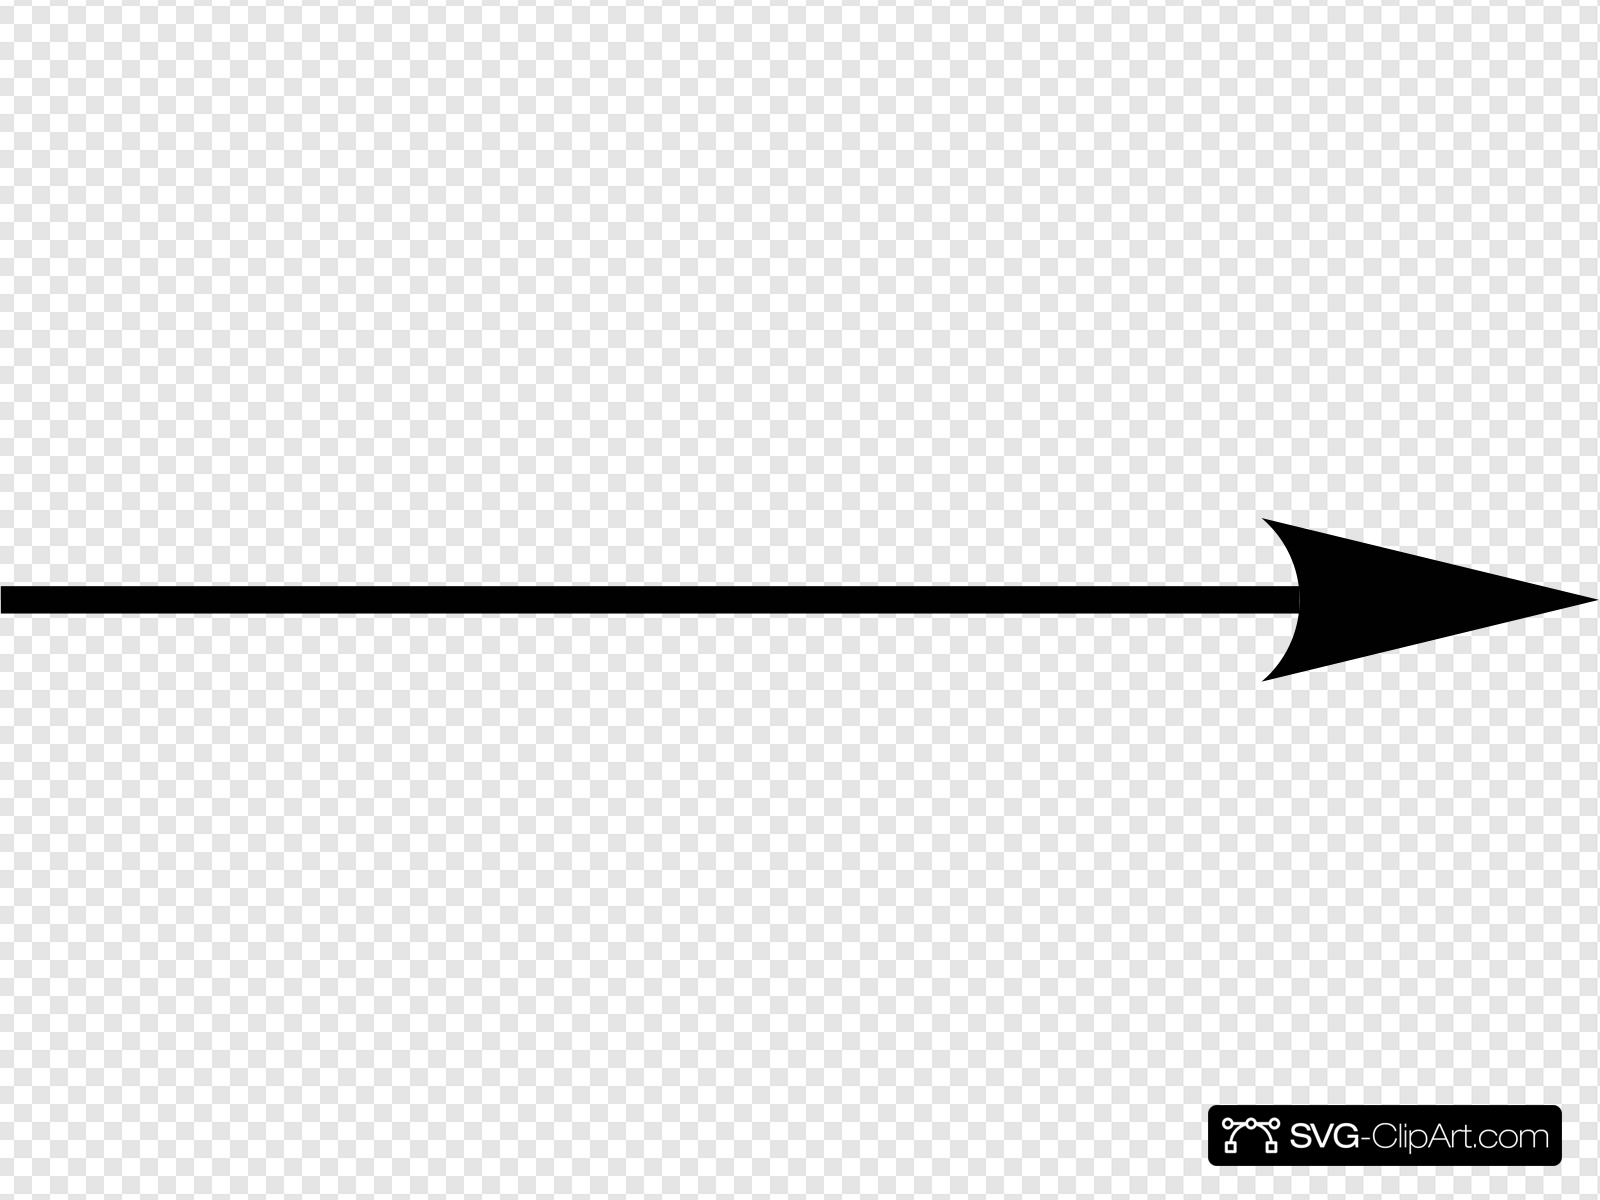 Right Black Arrow Clip art, Icon and SVG.